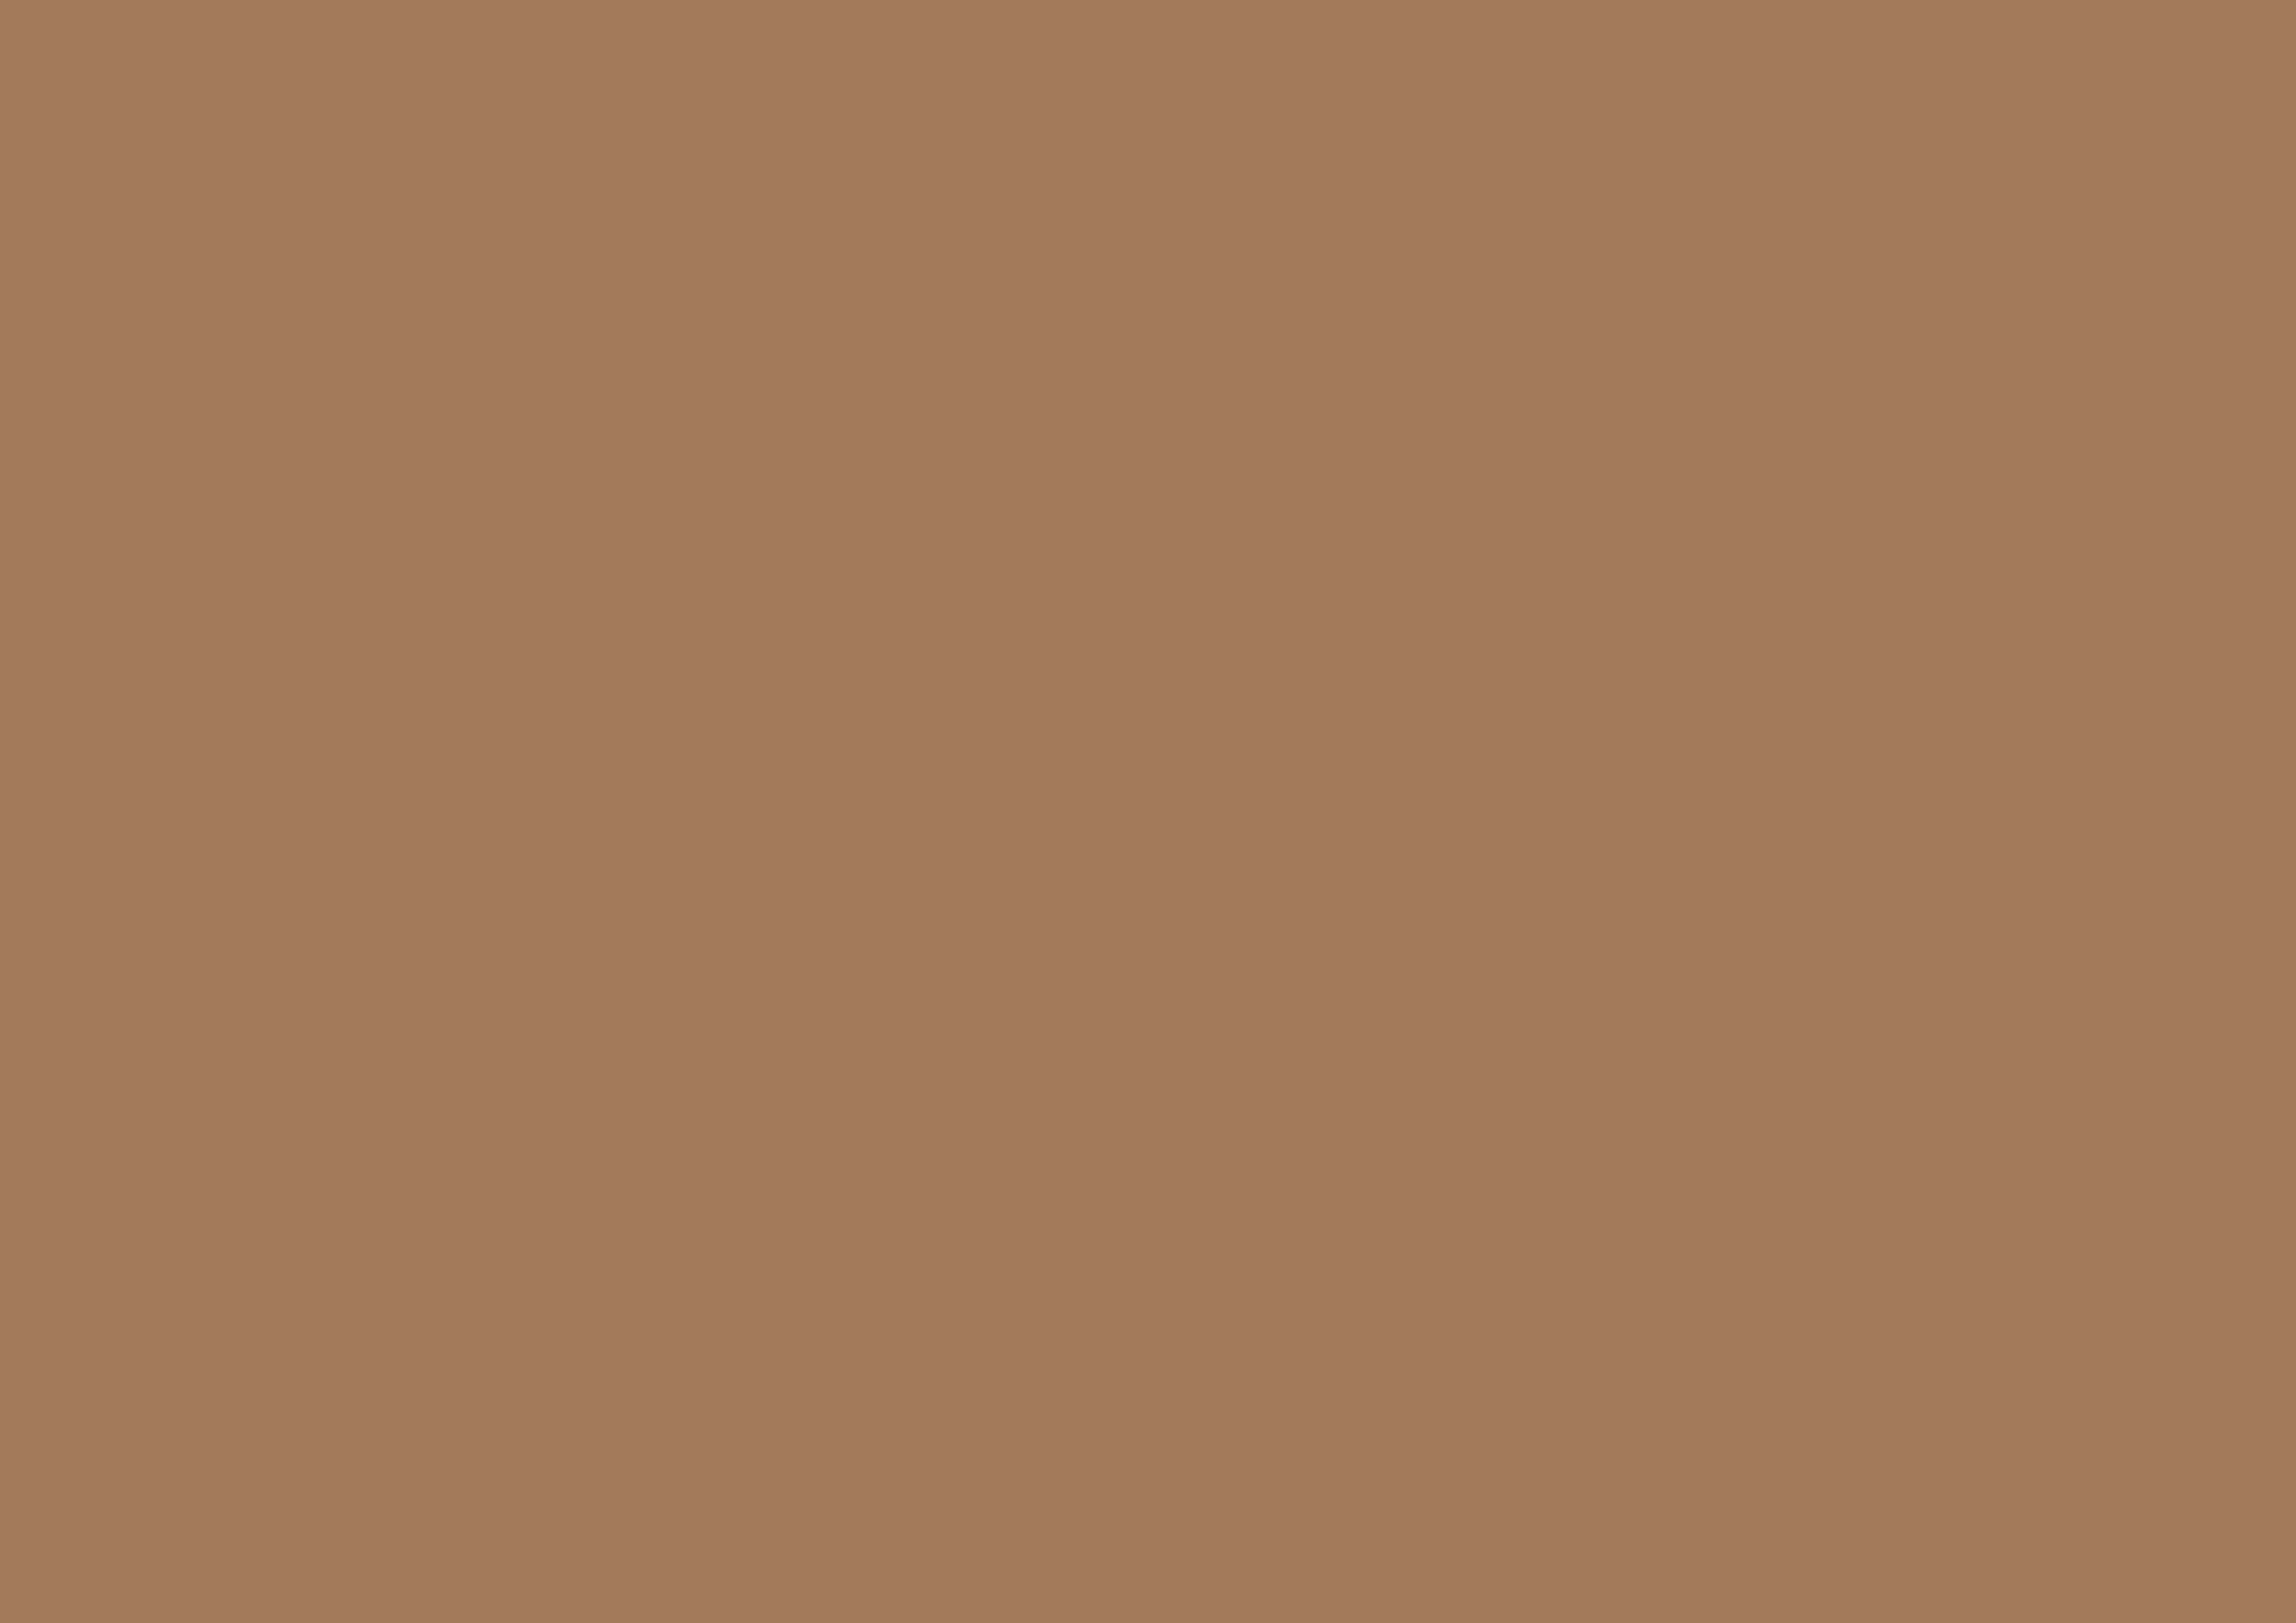 3508x2480 Tuscan Tan Solid Color Background